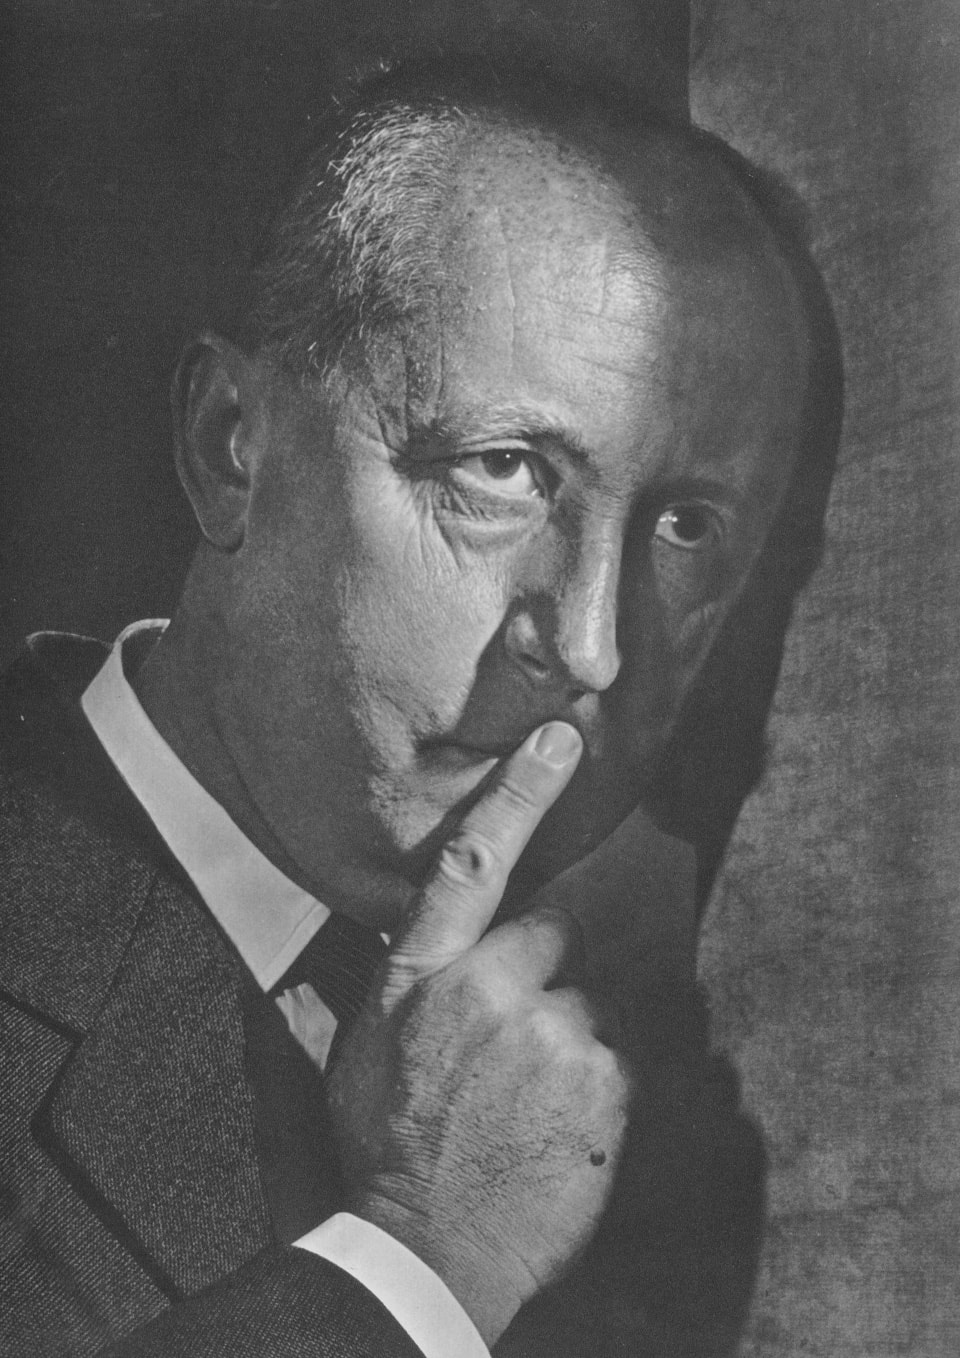 Christian Dior by Yousuf Karsh, 1954